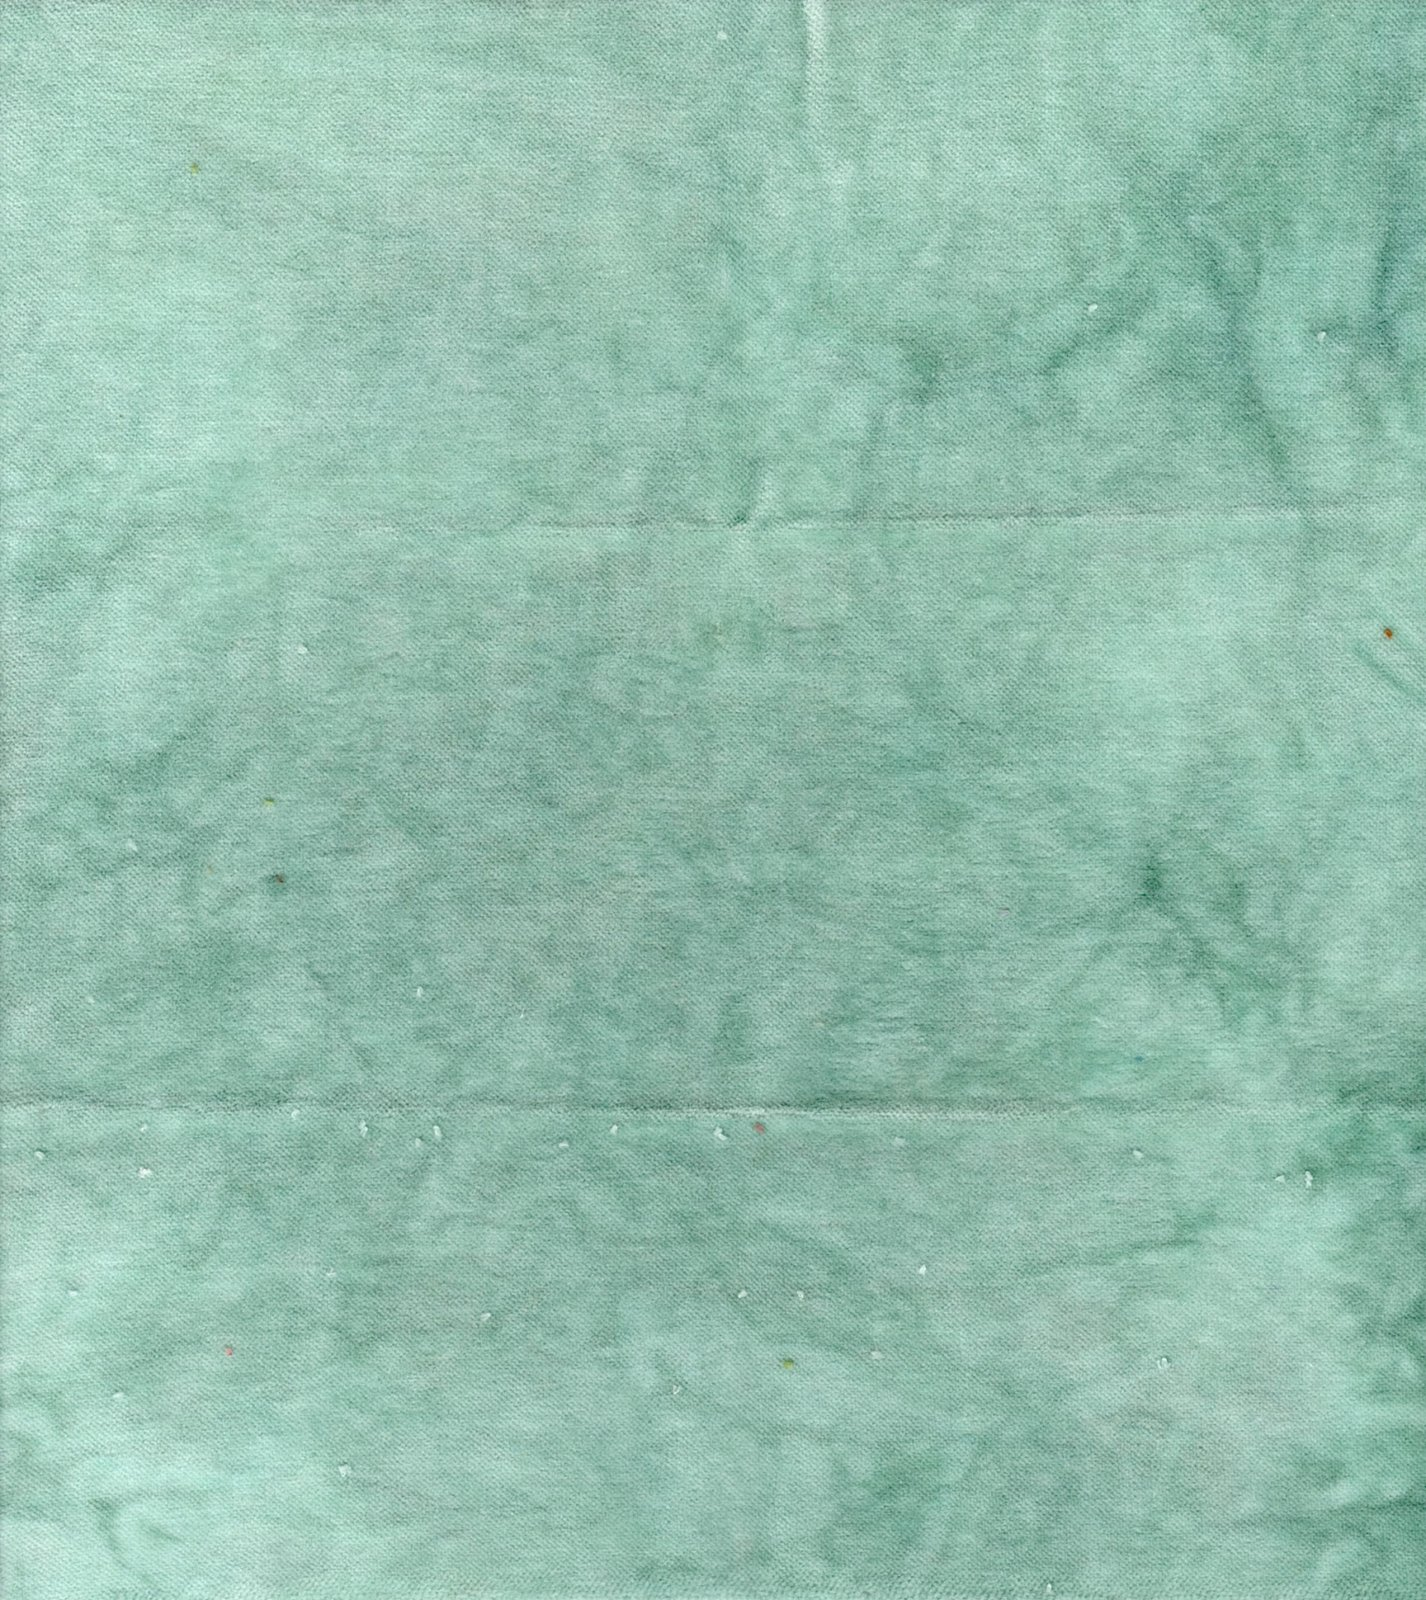 Mint Hand-Dyed Cotton Velveteen 9in x 10in